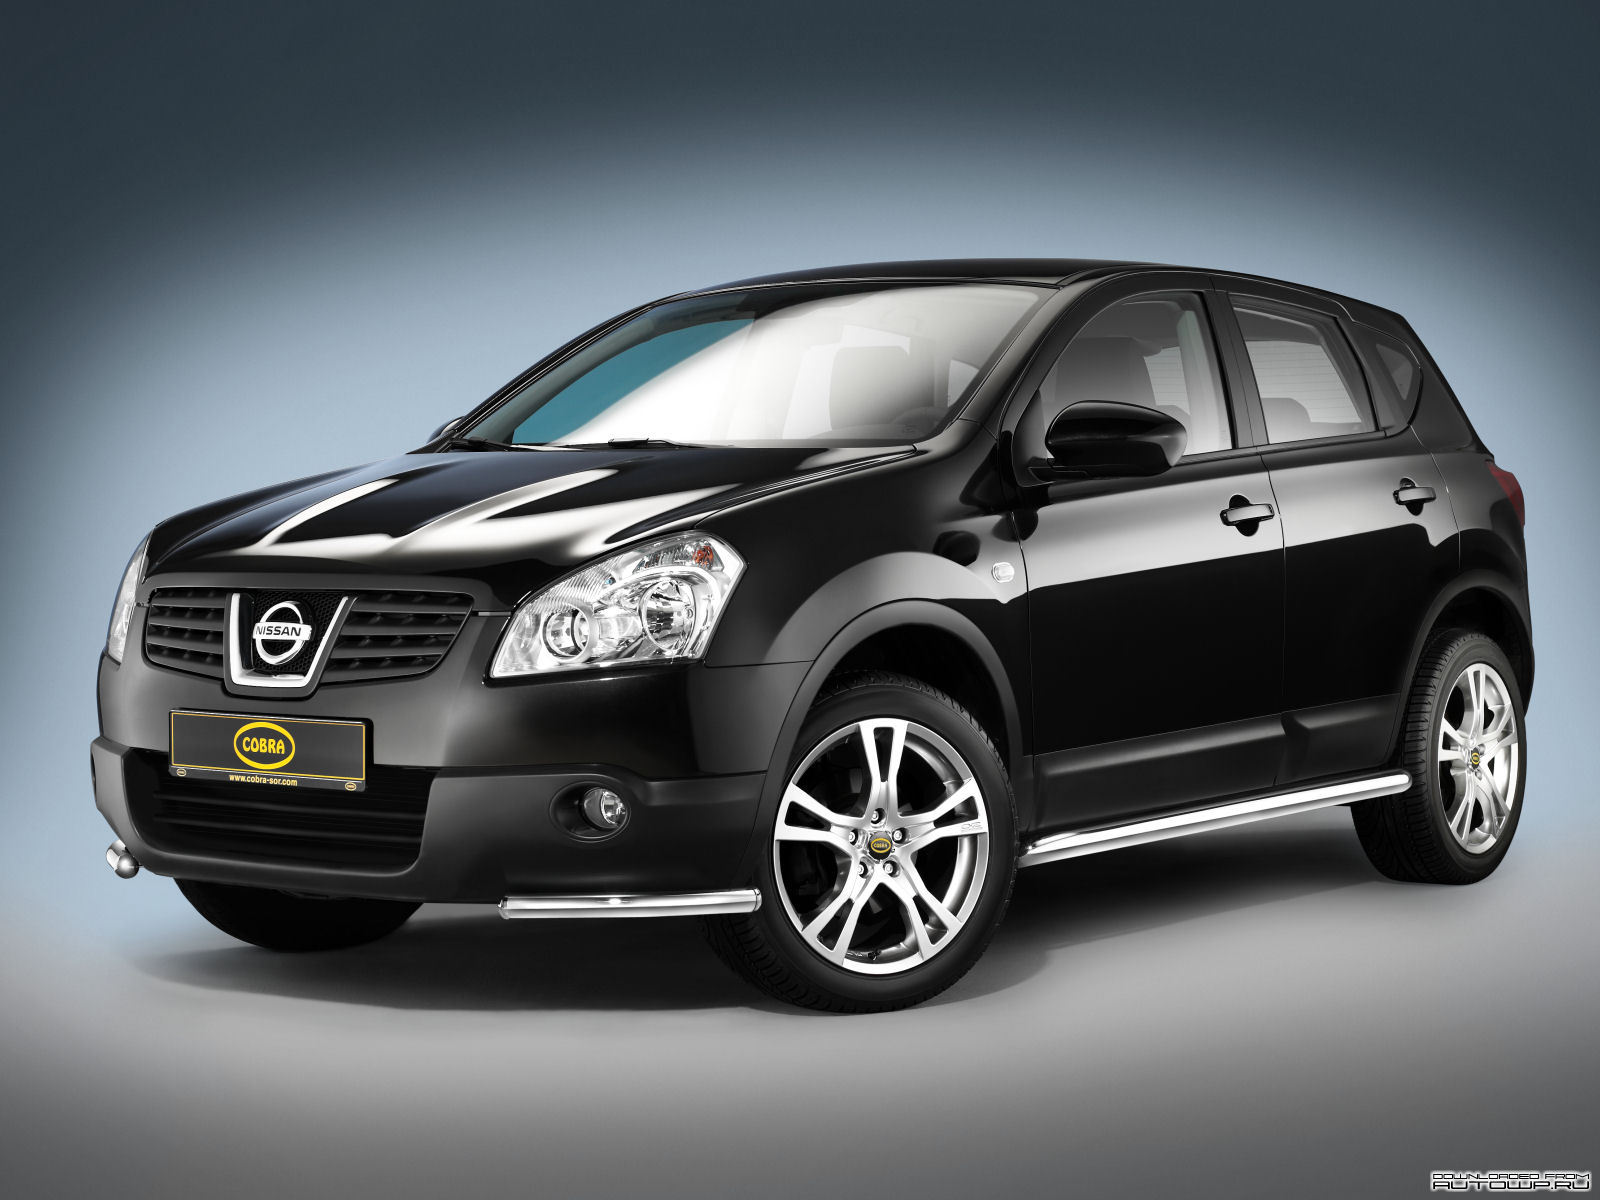 cobra nissan qashqai photos photogallery with 7 pics. Black Bedroom Furniture Sets. Home Design Ideas